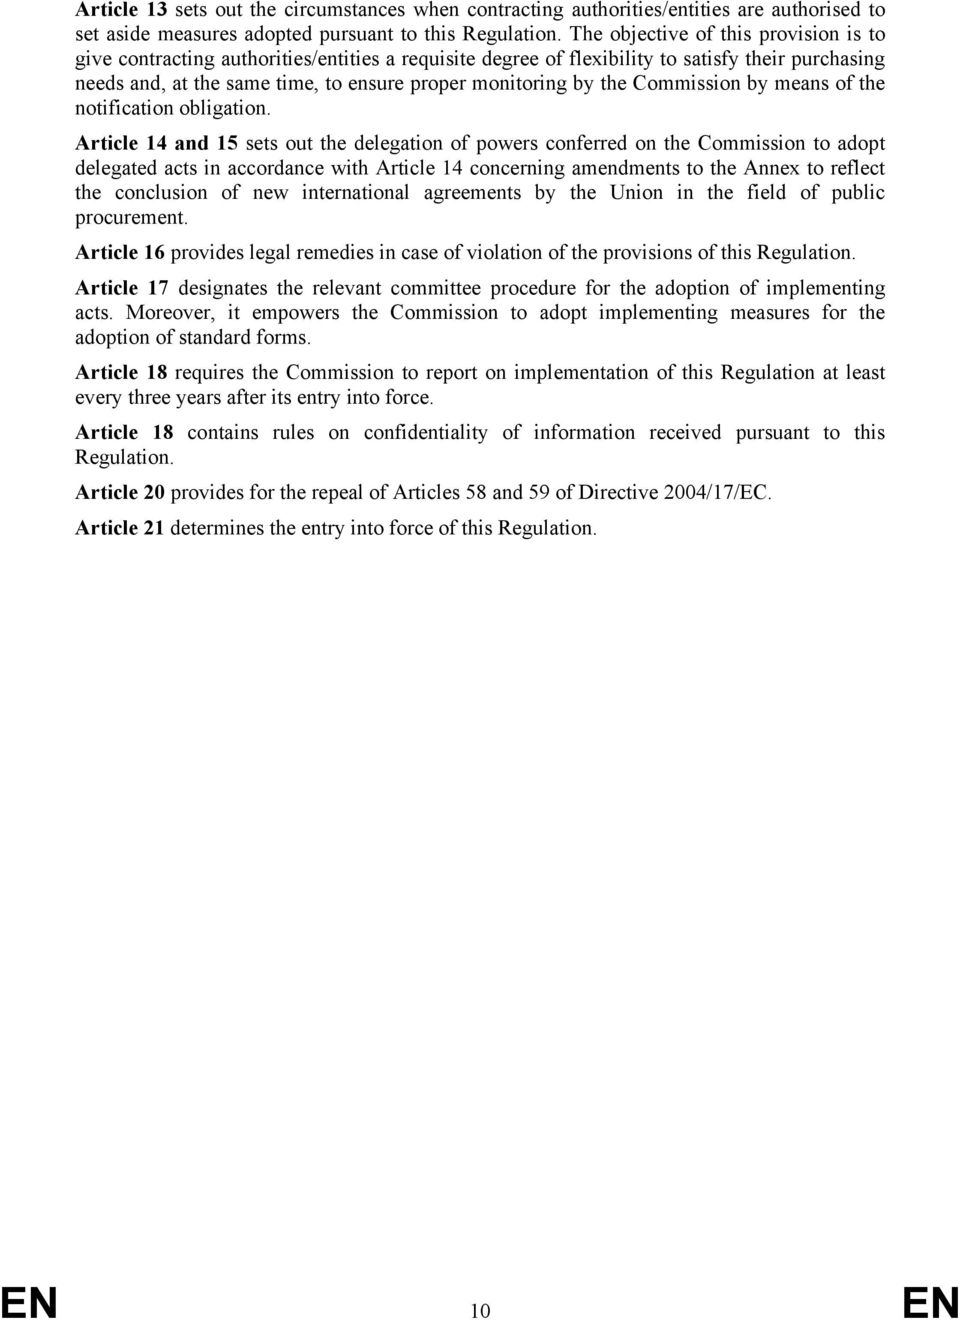 the Commission by means of the notification obligation.